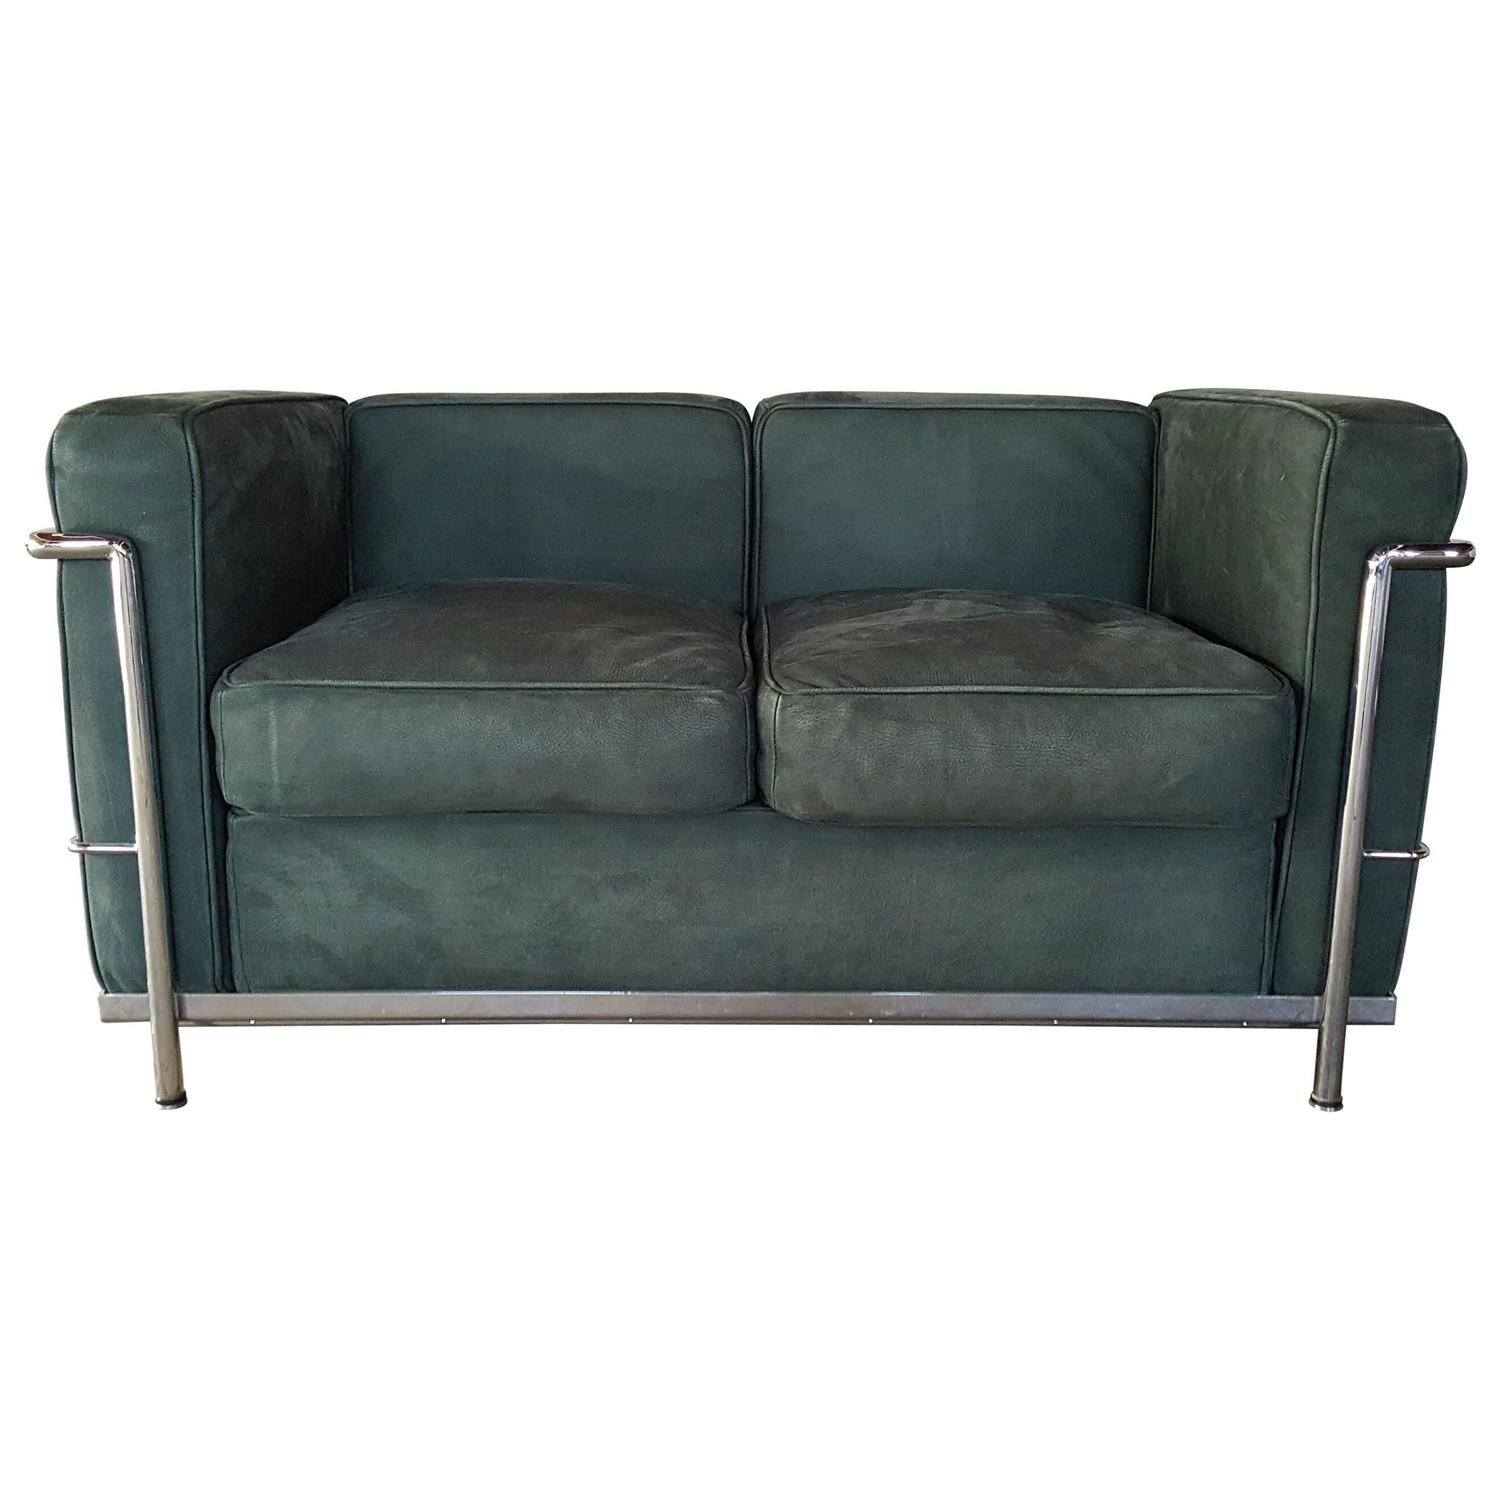 Le corbusier two seat sofa loveseat green suede and for Le corbusier sofa nachbau